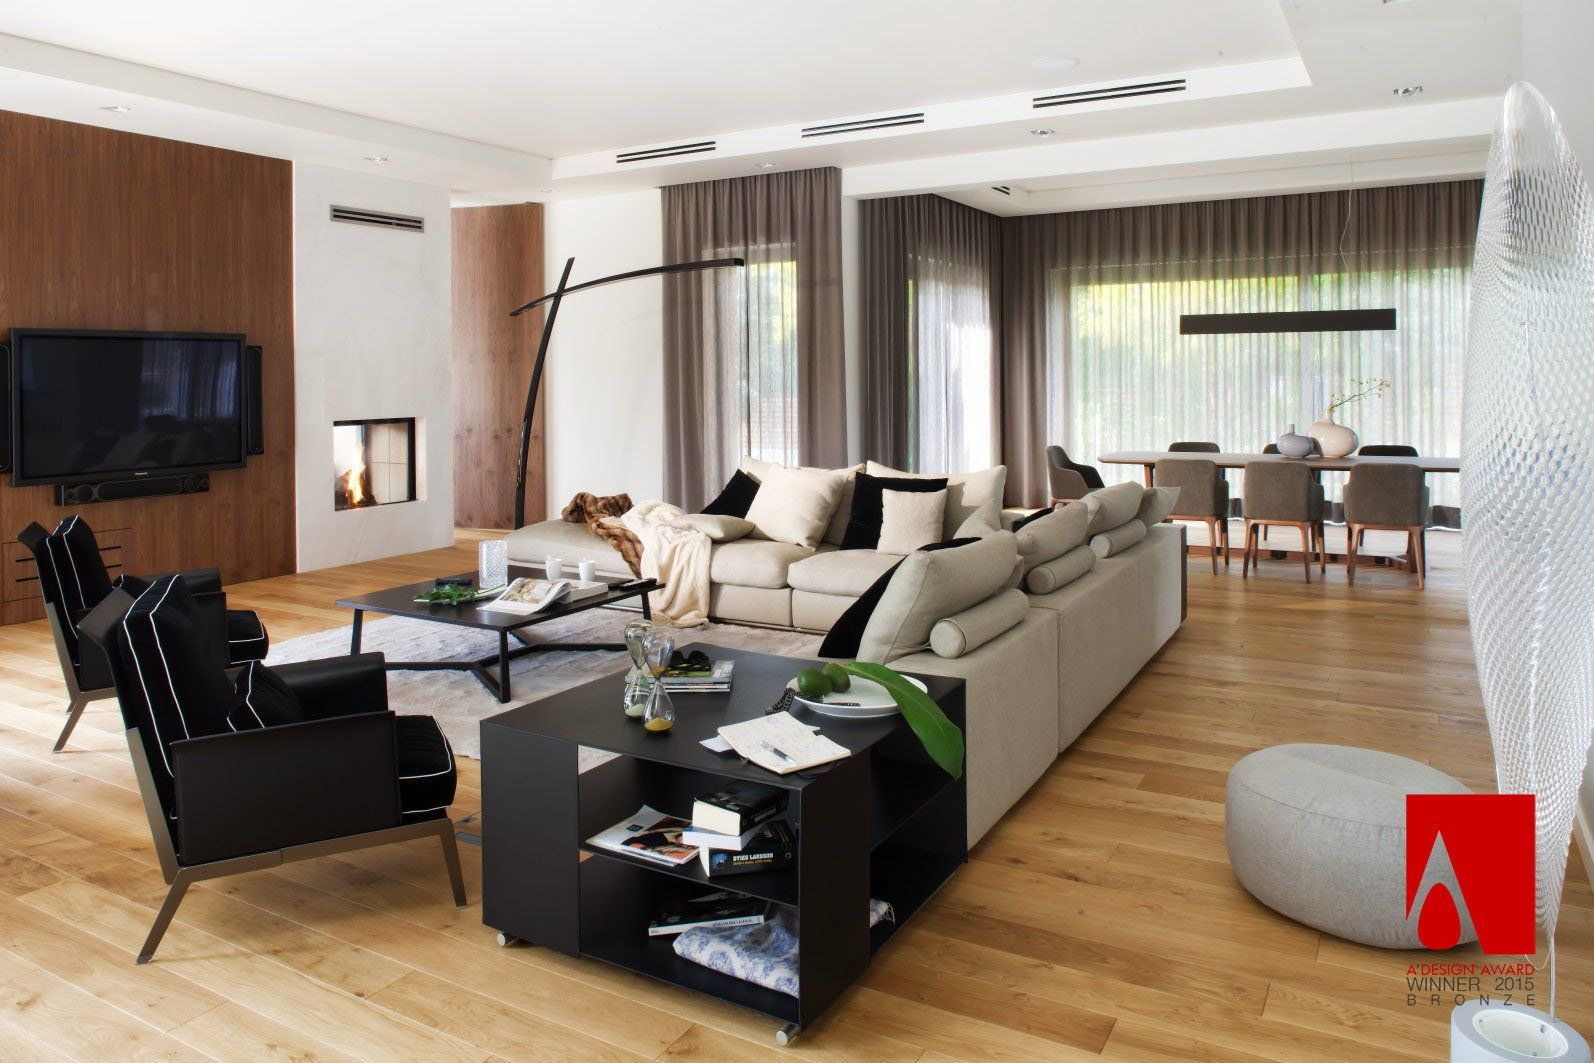 Flexform Sectional Available At Mood Showroom Warsaw Mood Largesofa Flexform Beige Zen Living Rooms Interior Architecture Home Living Room